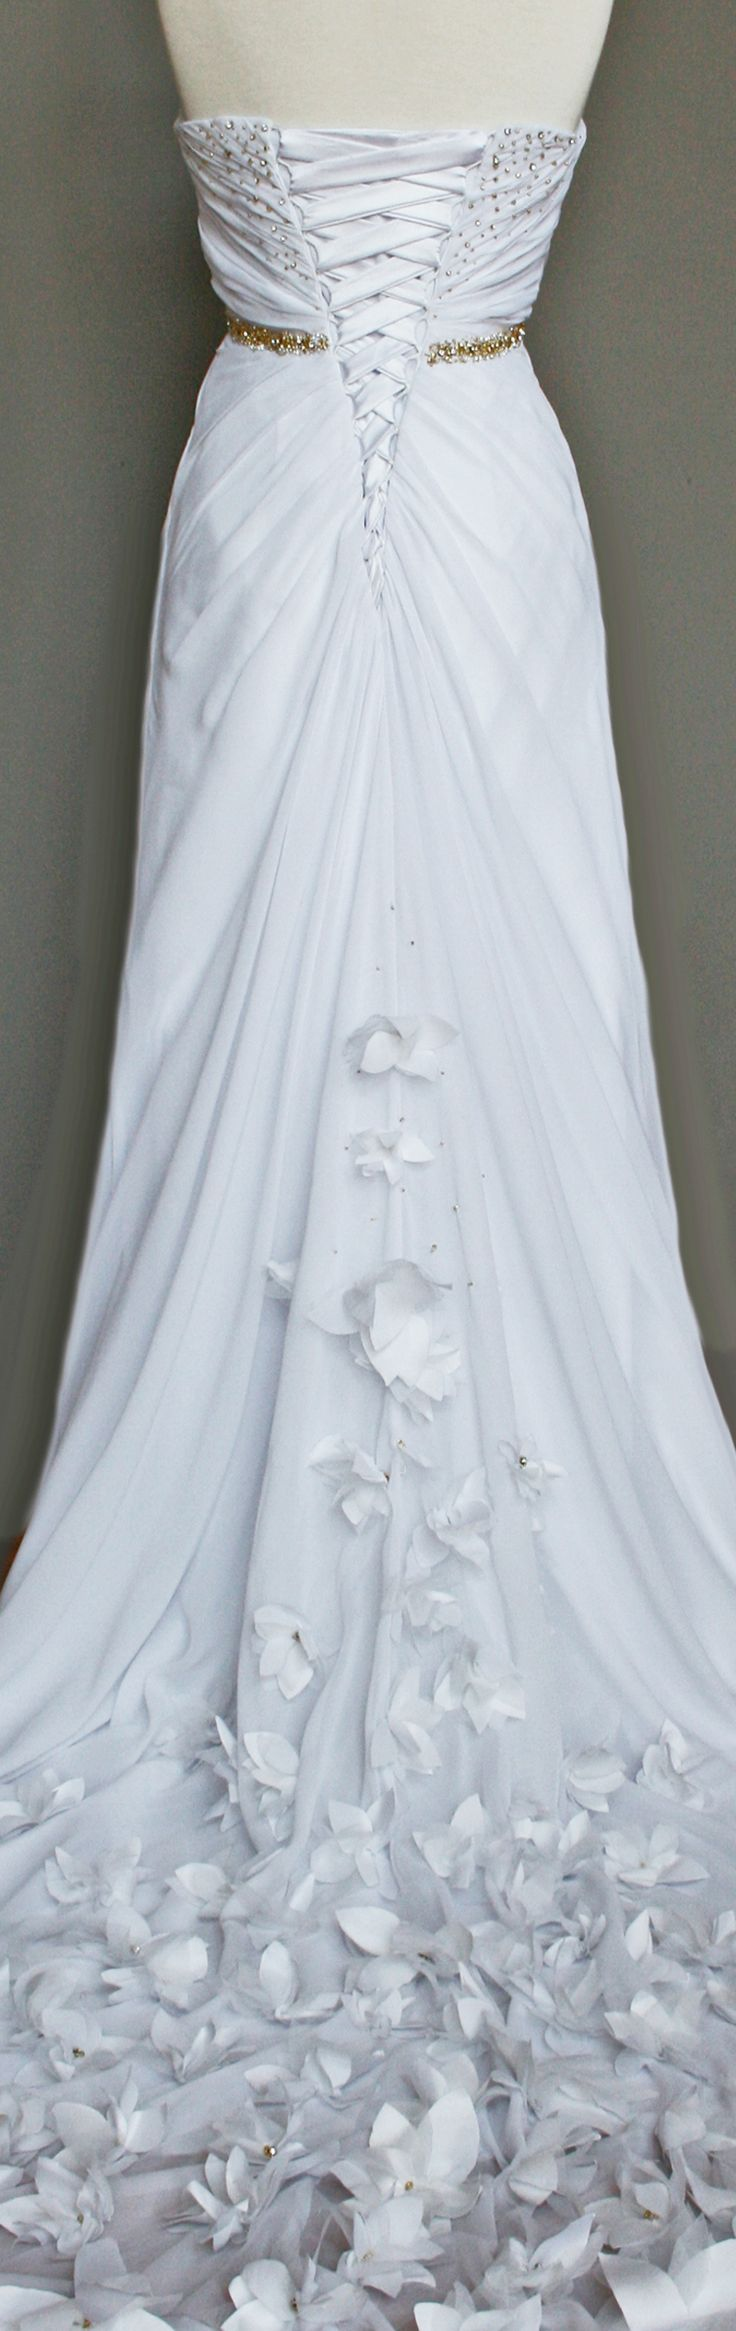 13 best wedding dress designs images on Pinterest | Homecoming ...